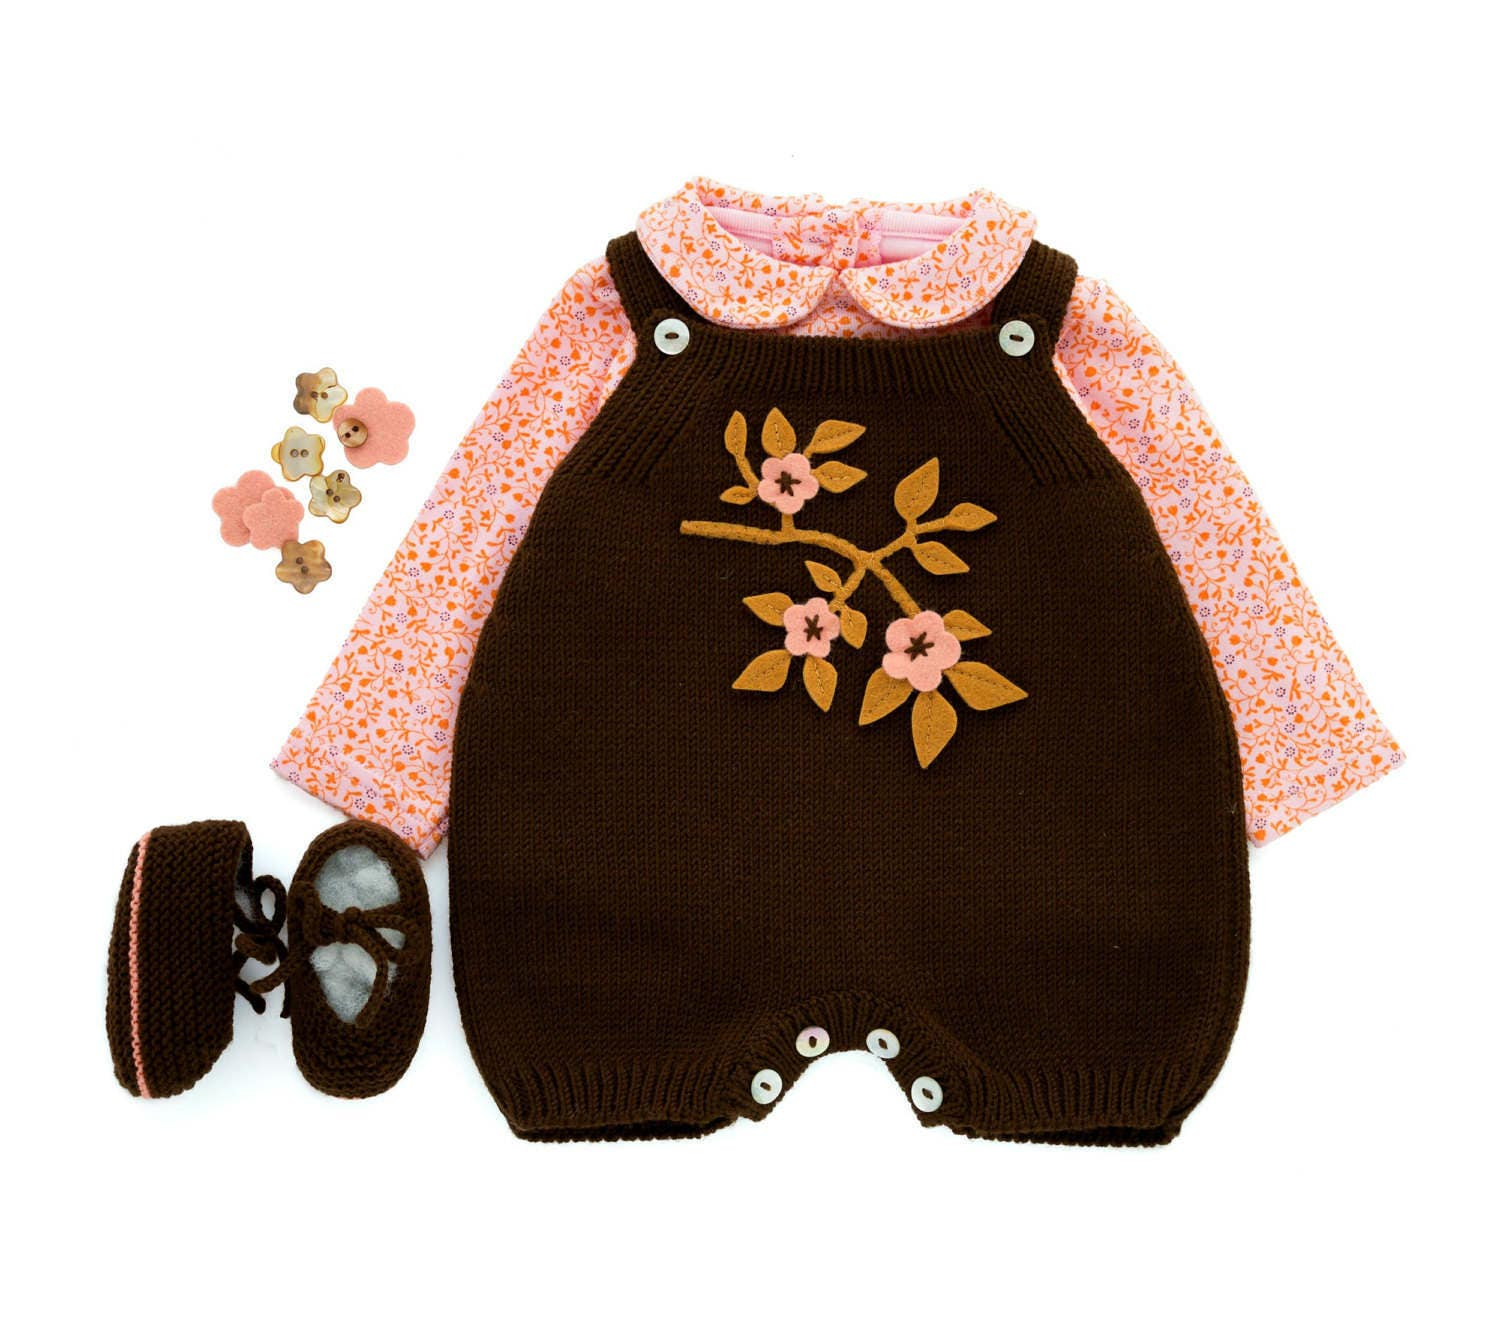 Baby Overalls Knitted Baby Romper Knit Baby Jumpsuit Baby